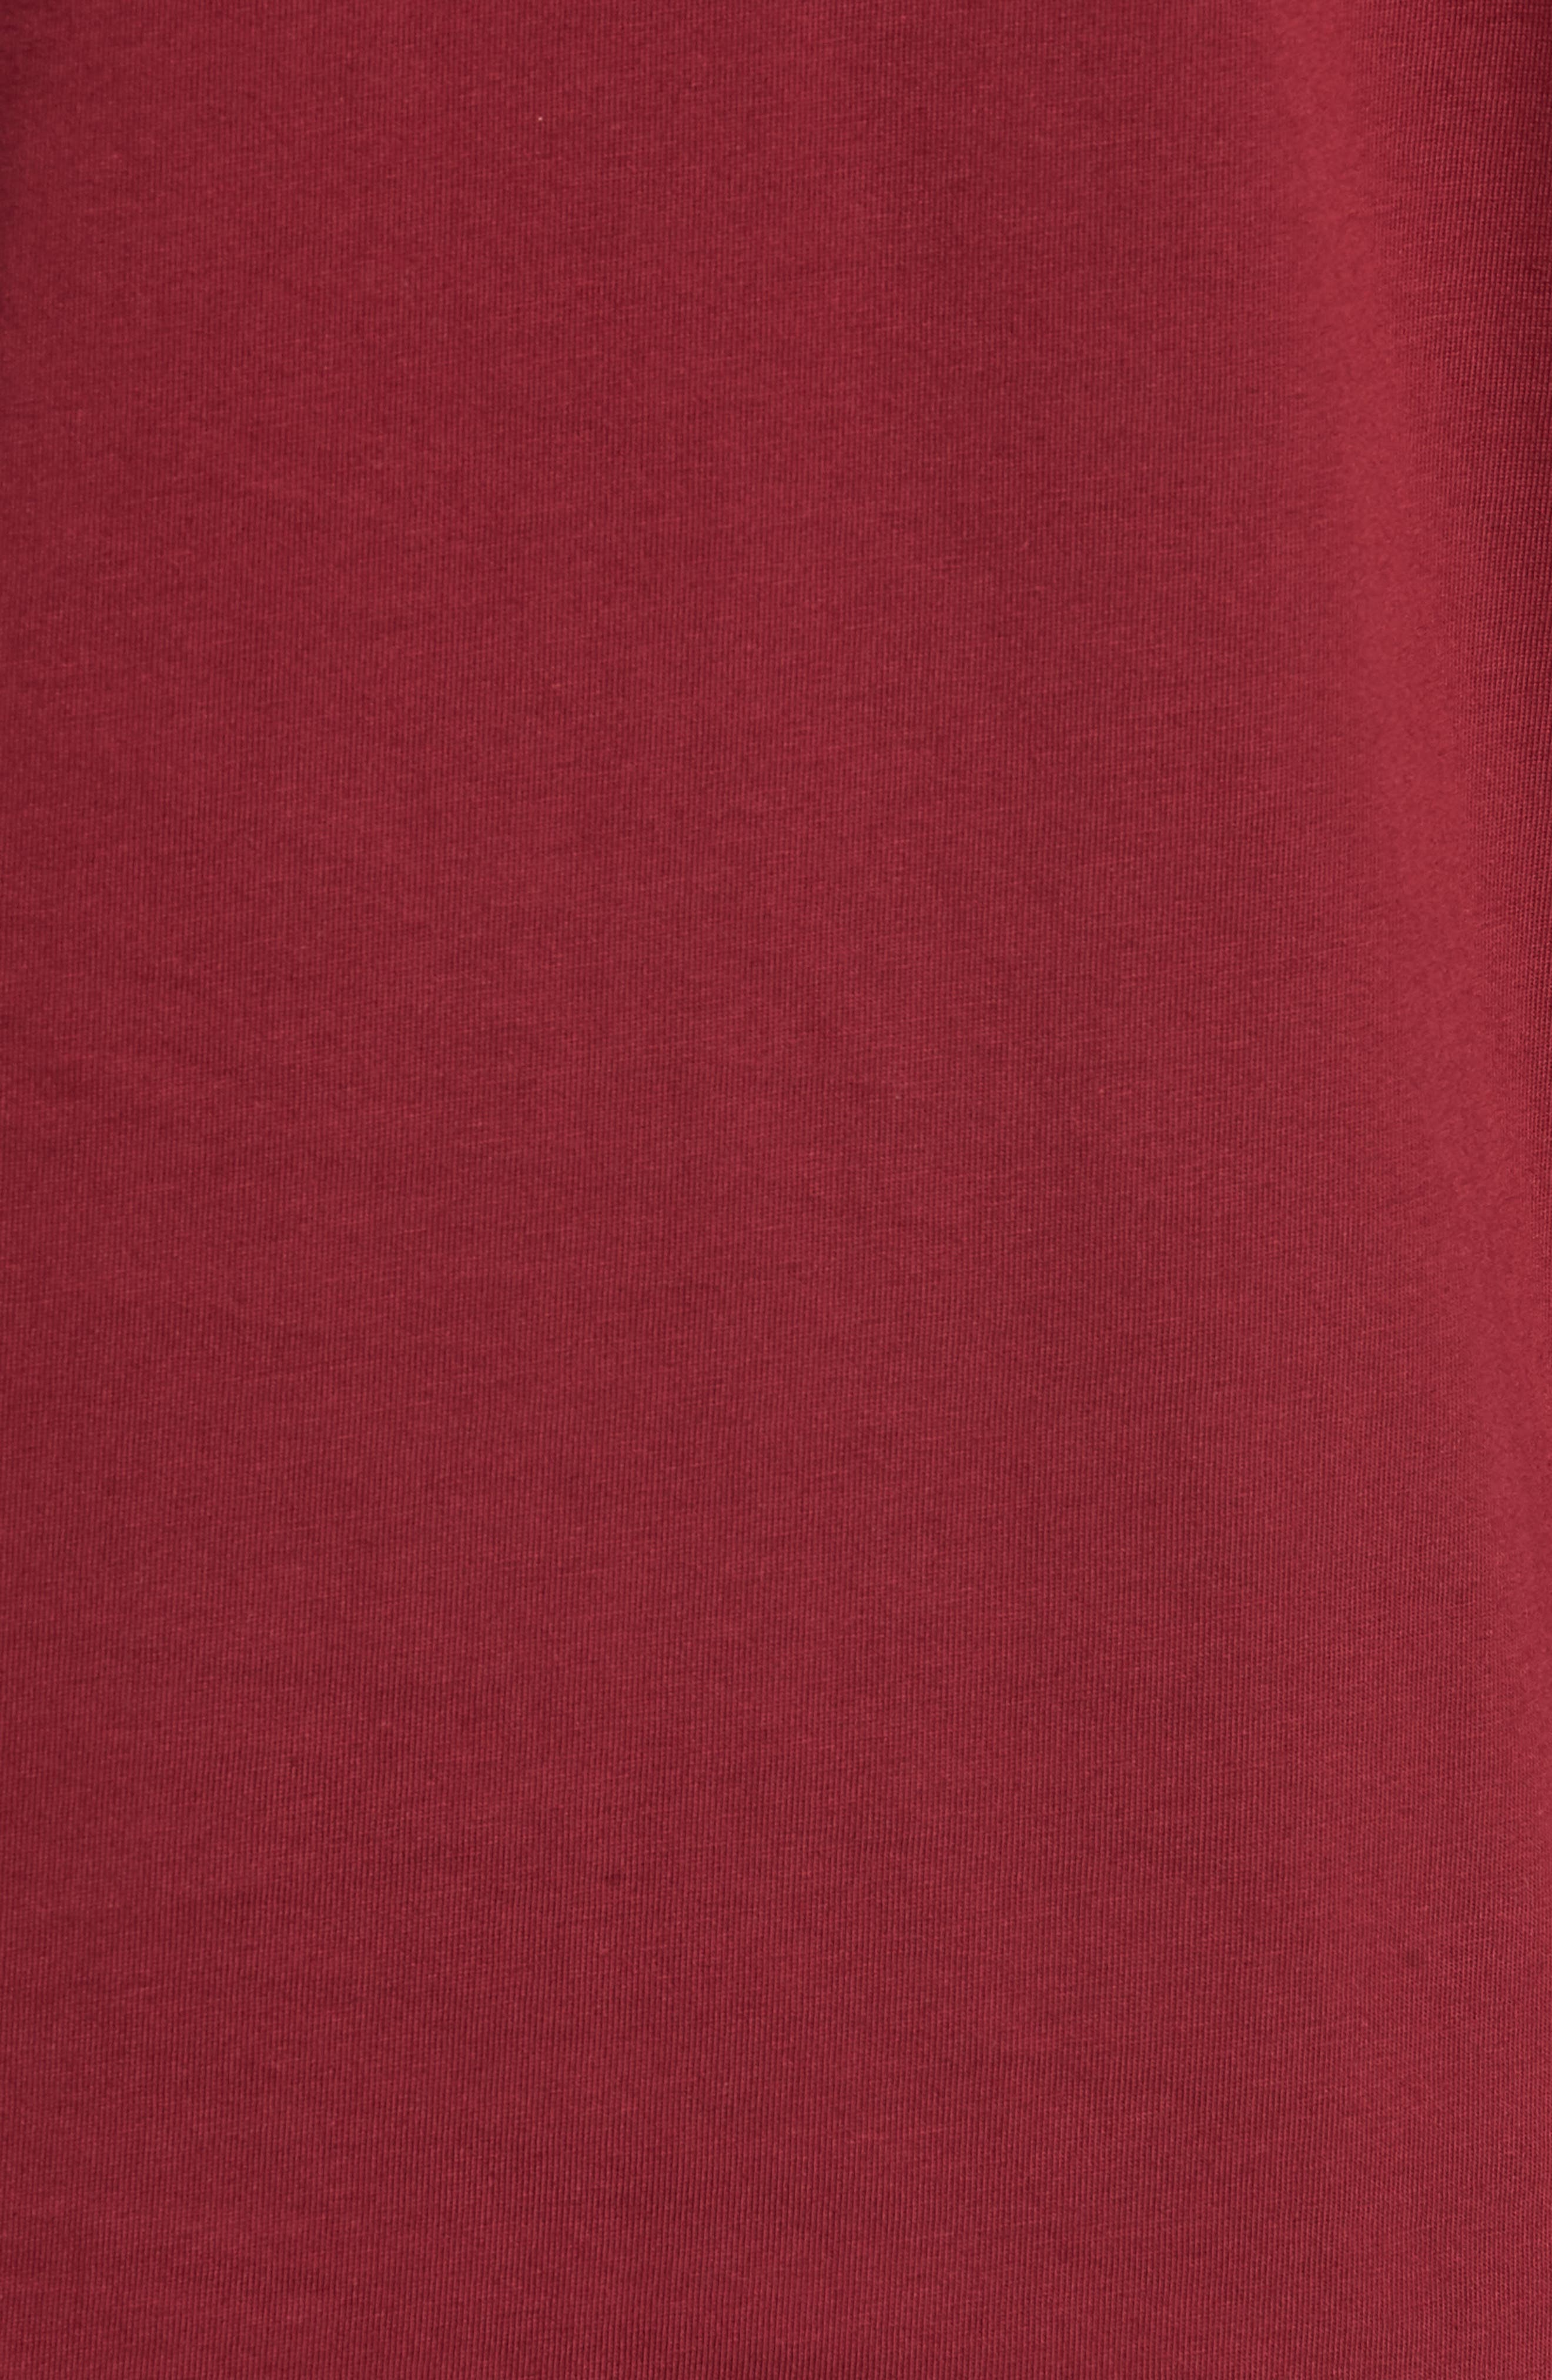 Embroidered Colorblock T-Shirt,                             Alternate thumbnail 5, color,                             TAWNY PORT